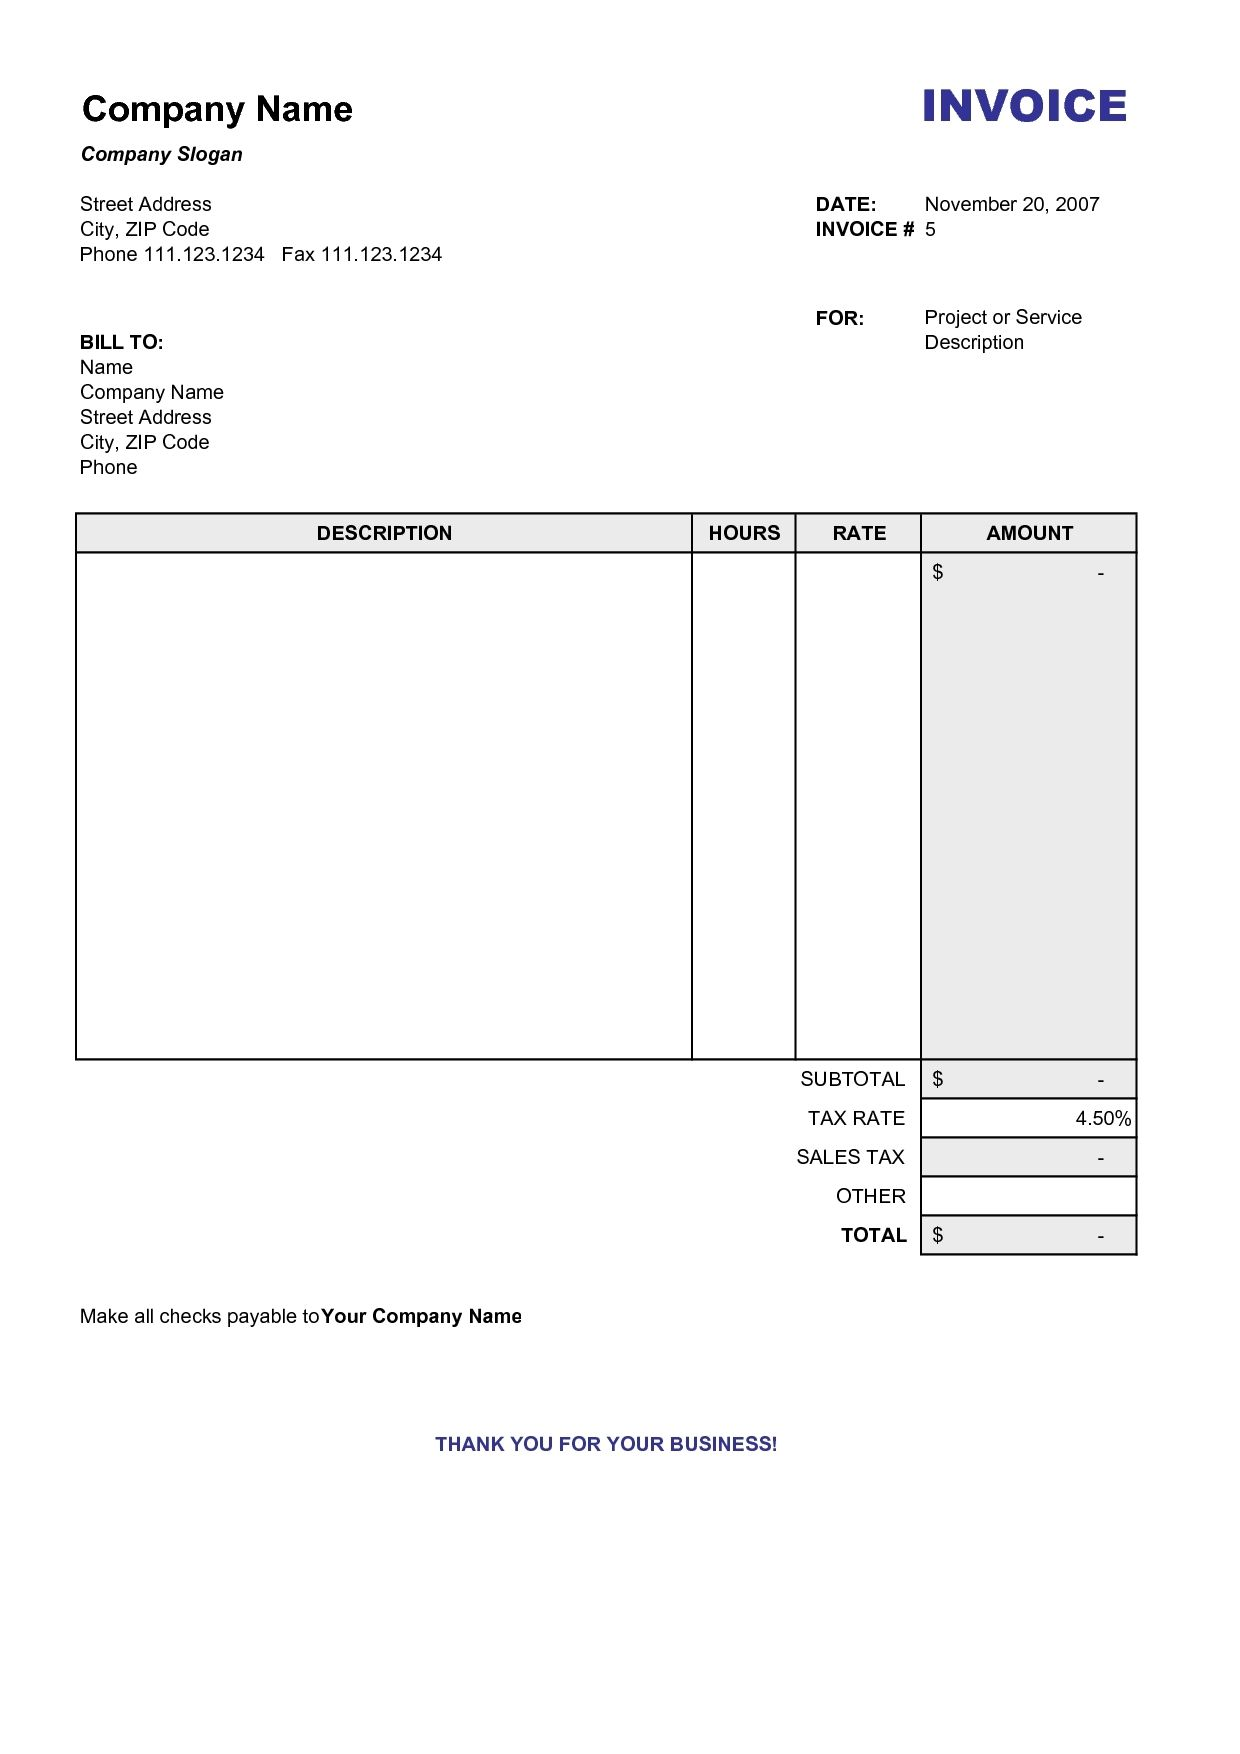 Copy Of A Blank Invoice Invoice Template Free Copy Of Blank - Microsoft word templates invoice for service business